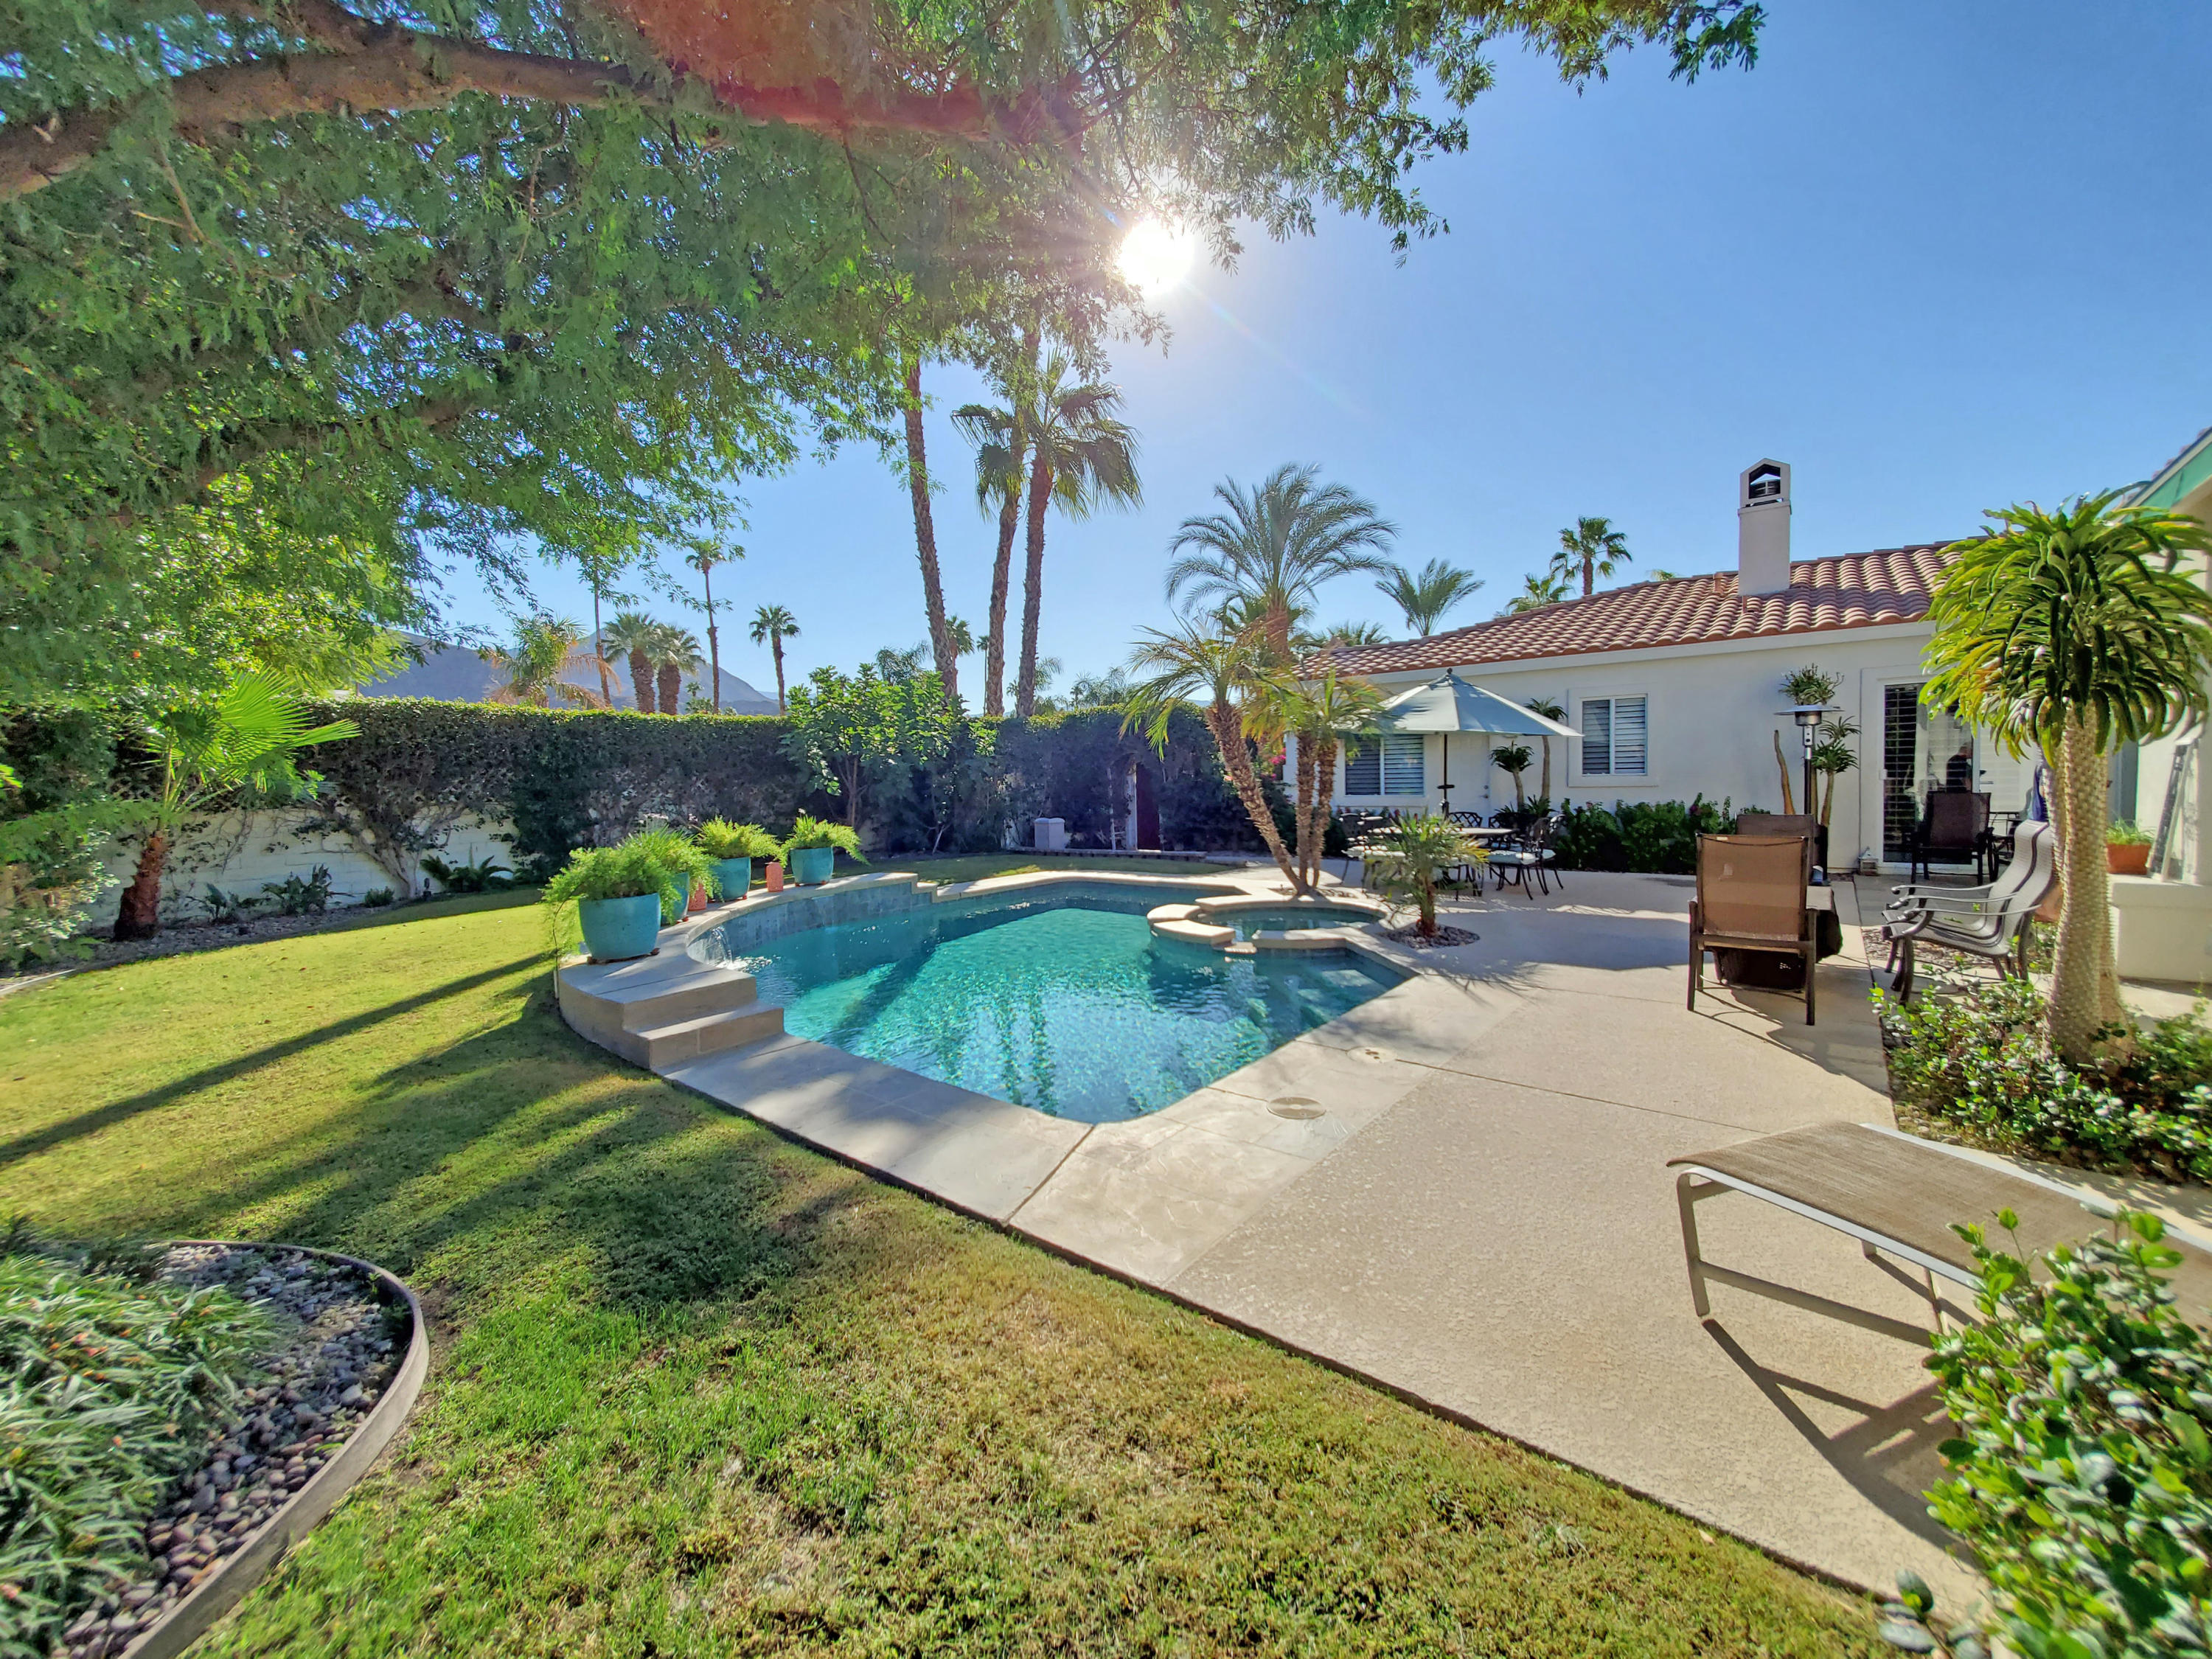 Photo of 76870 Tomahawk, Indian Wells, CA 92210